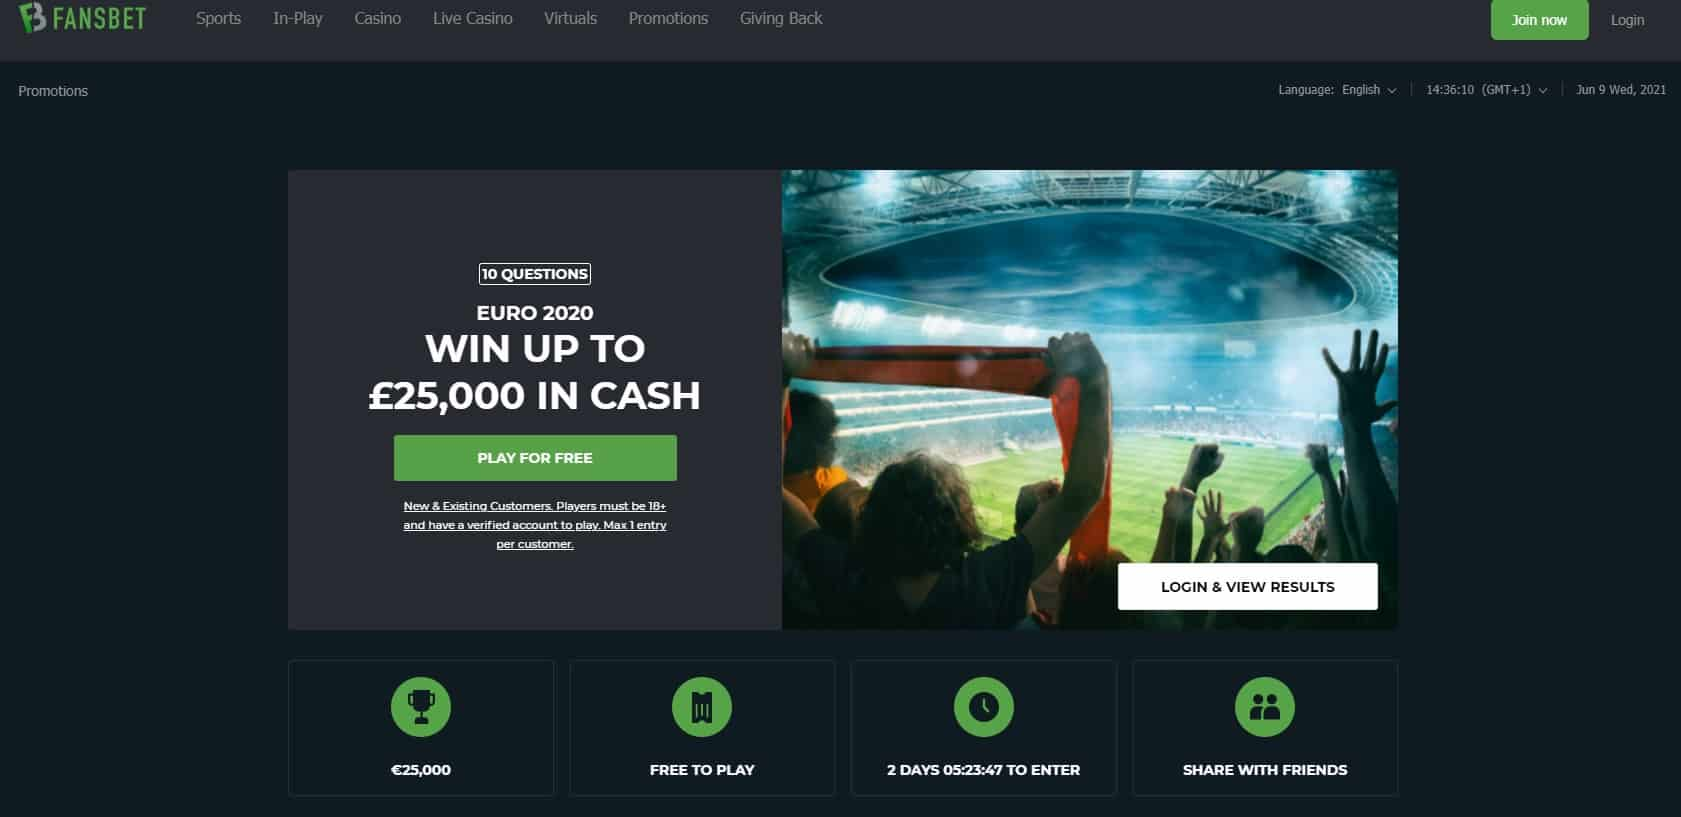 Free Bets at Fansbet